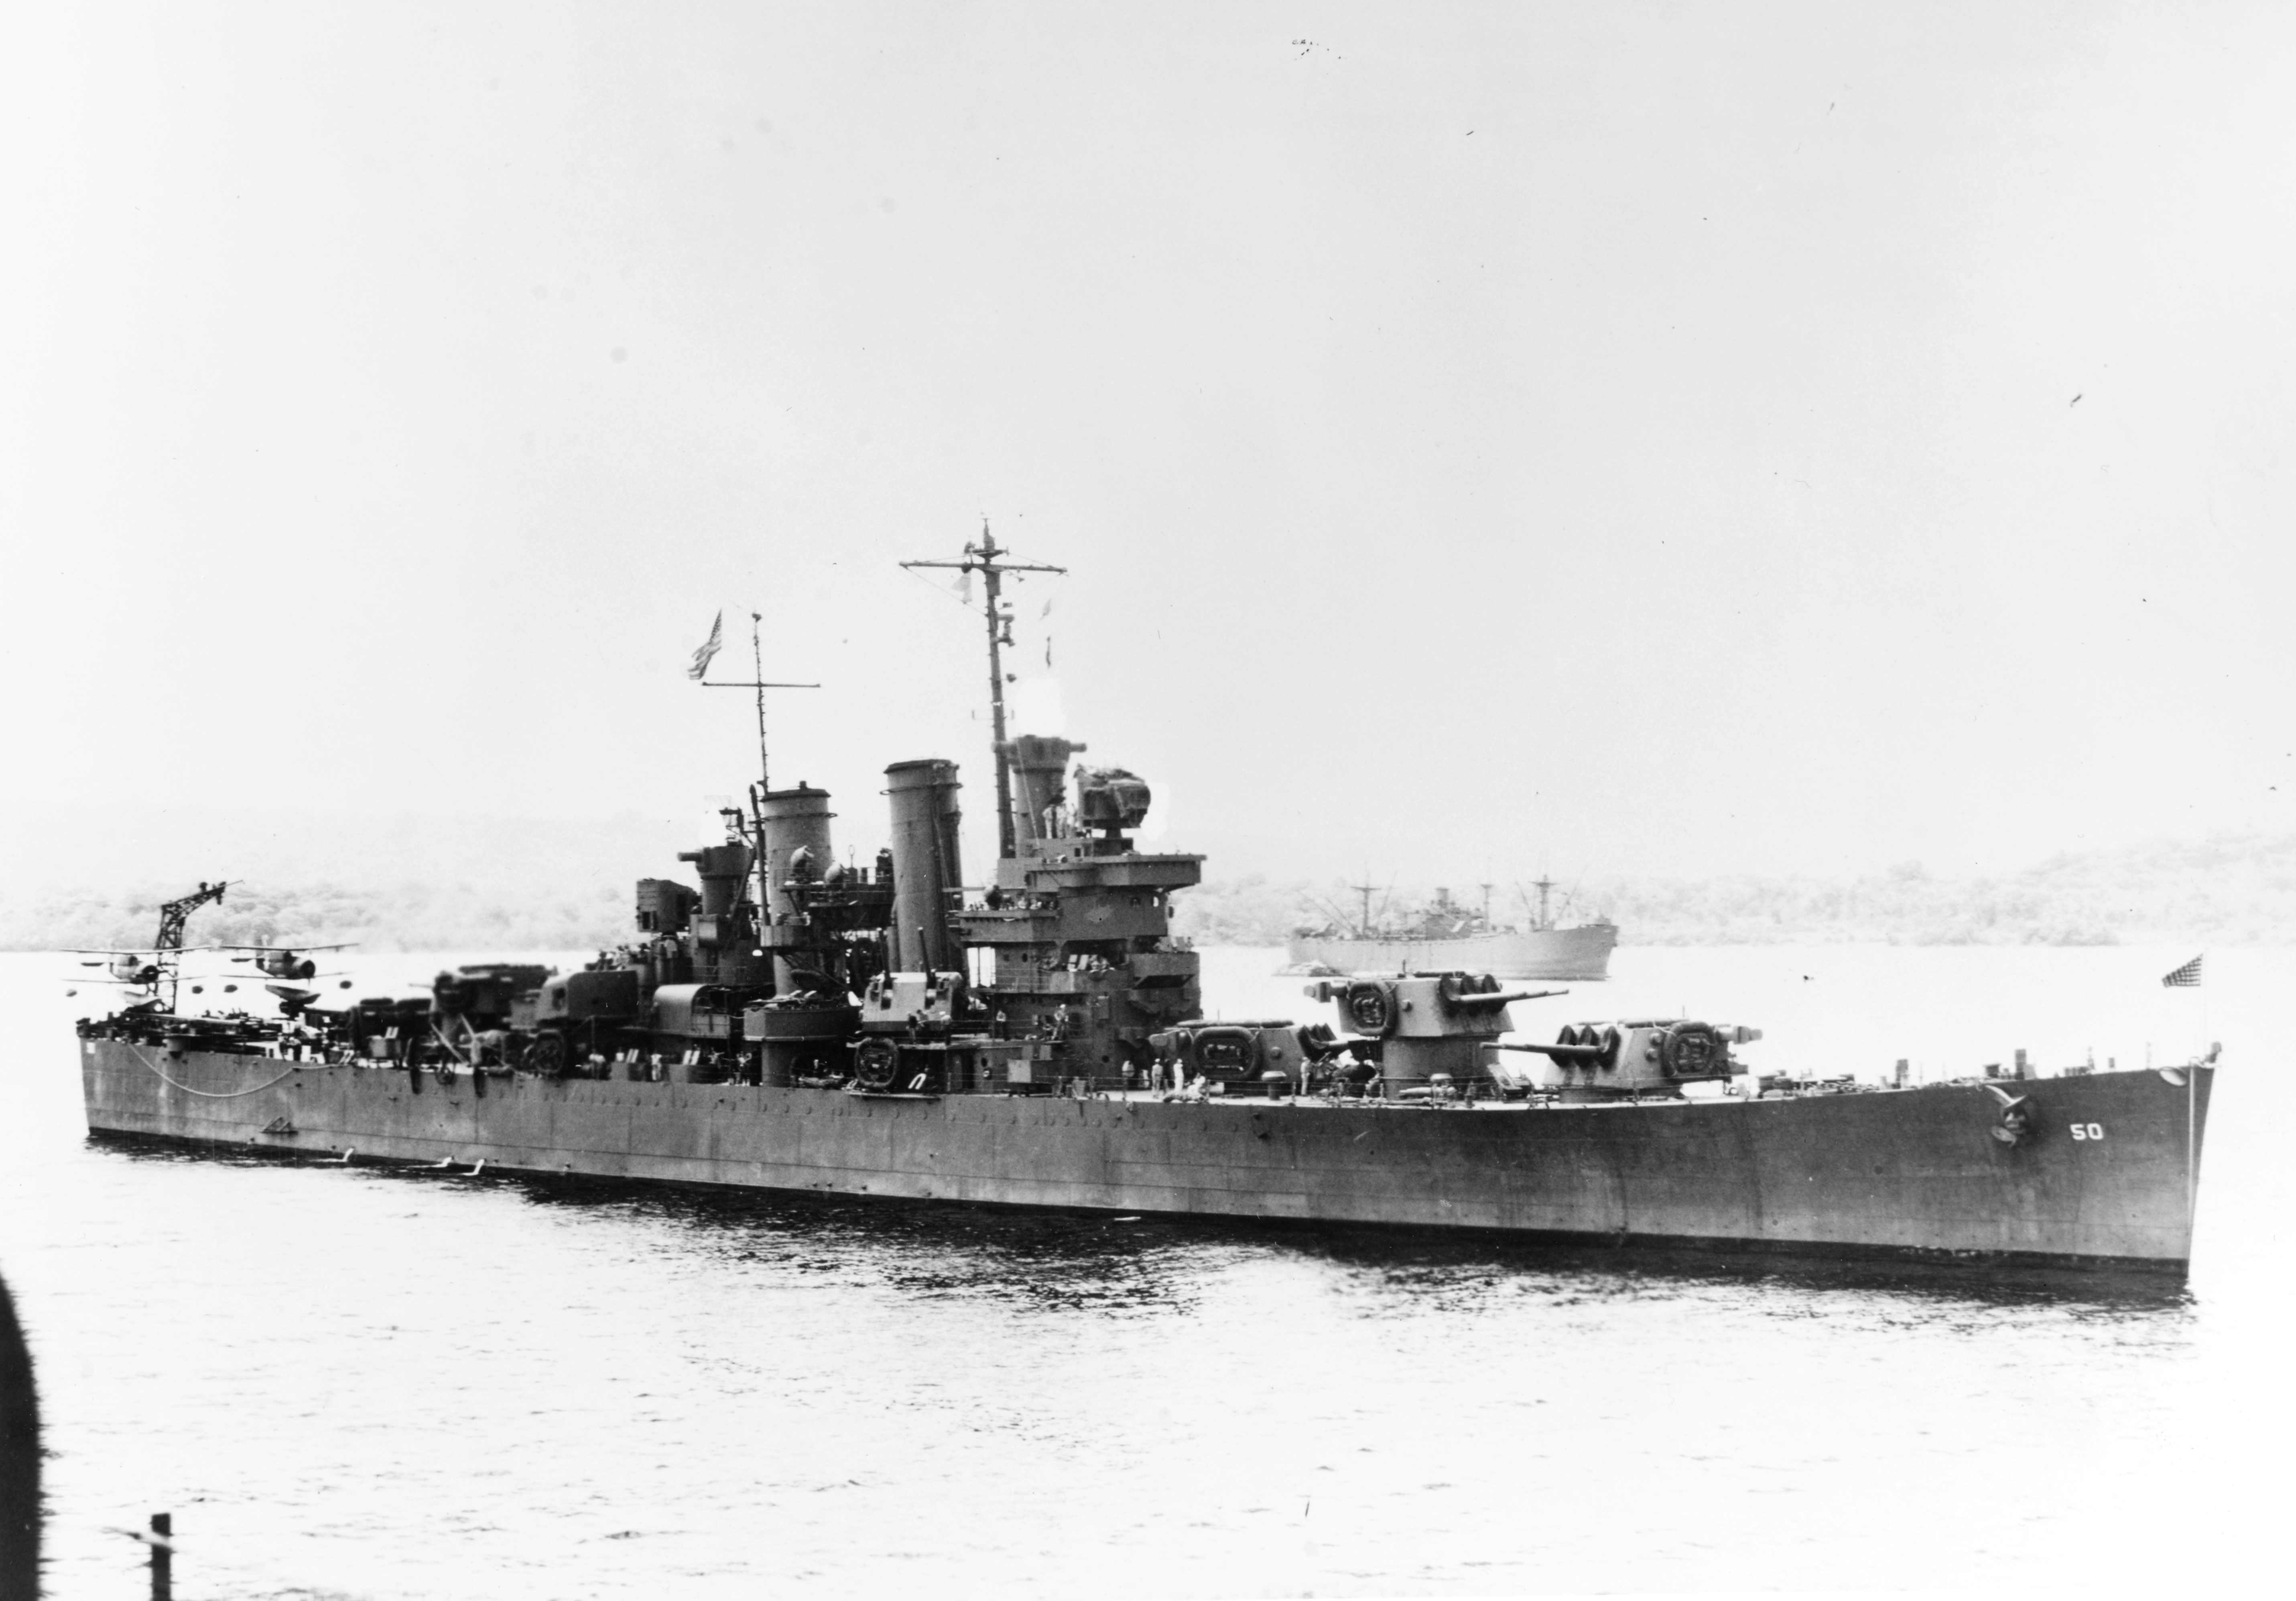 The U.S. Navy light cruiser USS Helena (CL-50) at a South Pacific base, between battles, circa in 1943. This image has been retouched to remove radar antennas from the gun directors and masts. The Helena was part of Task Force 64 under Norman Scott in the Battle of Cape Esperance.